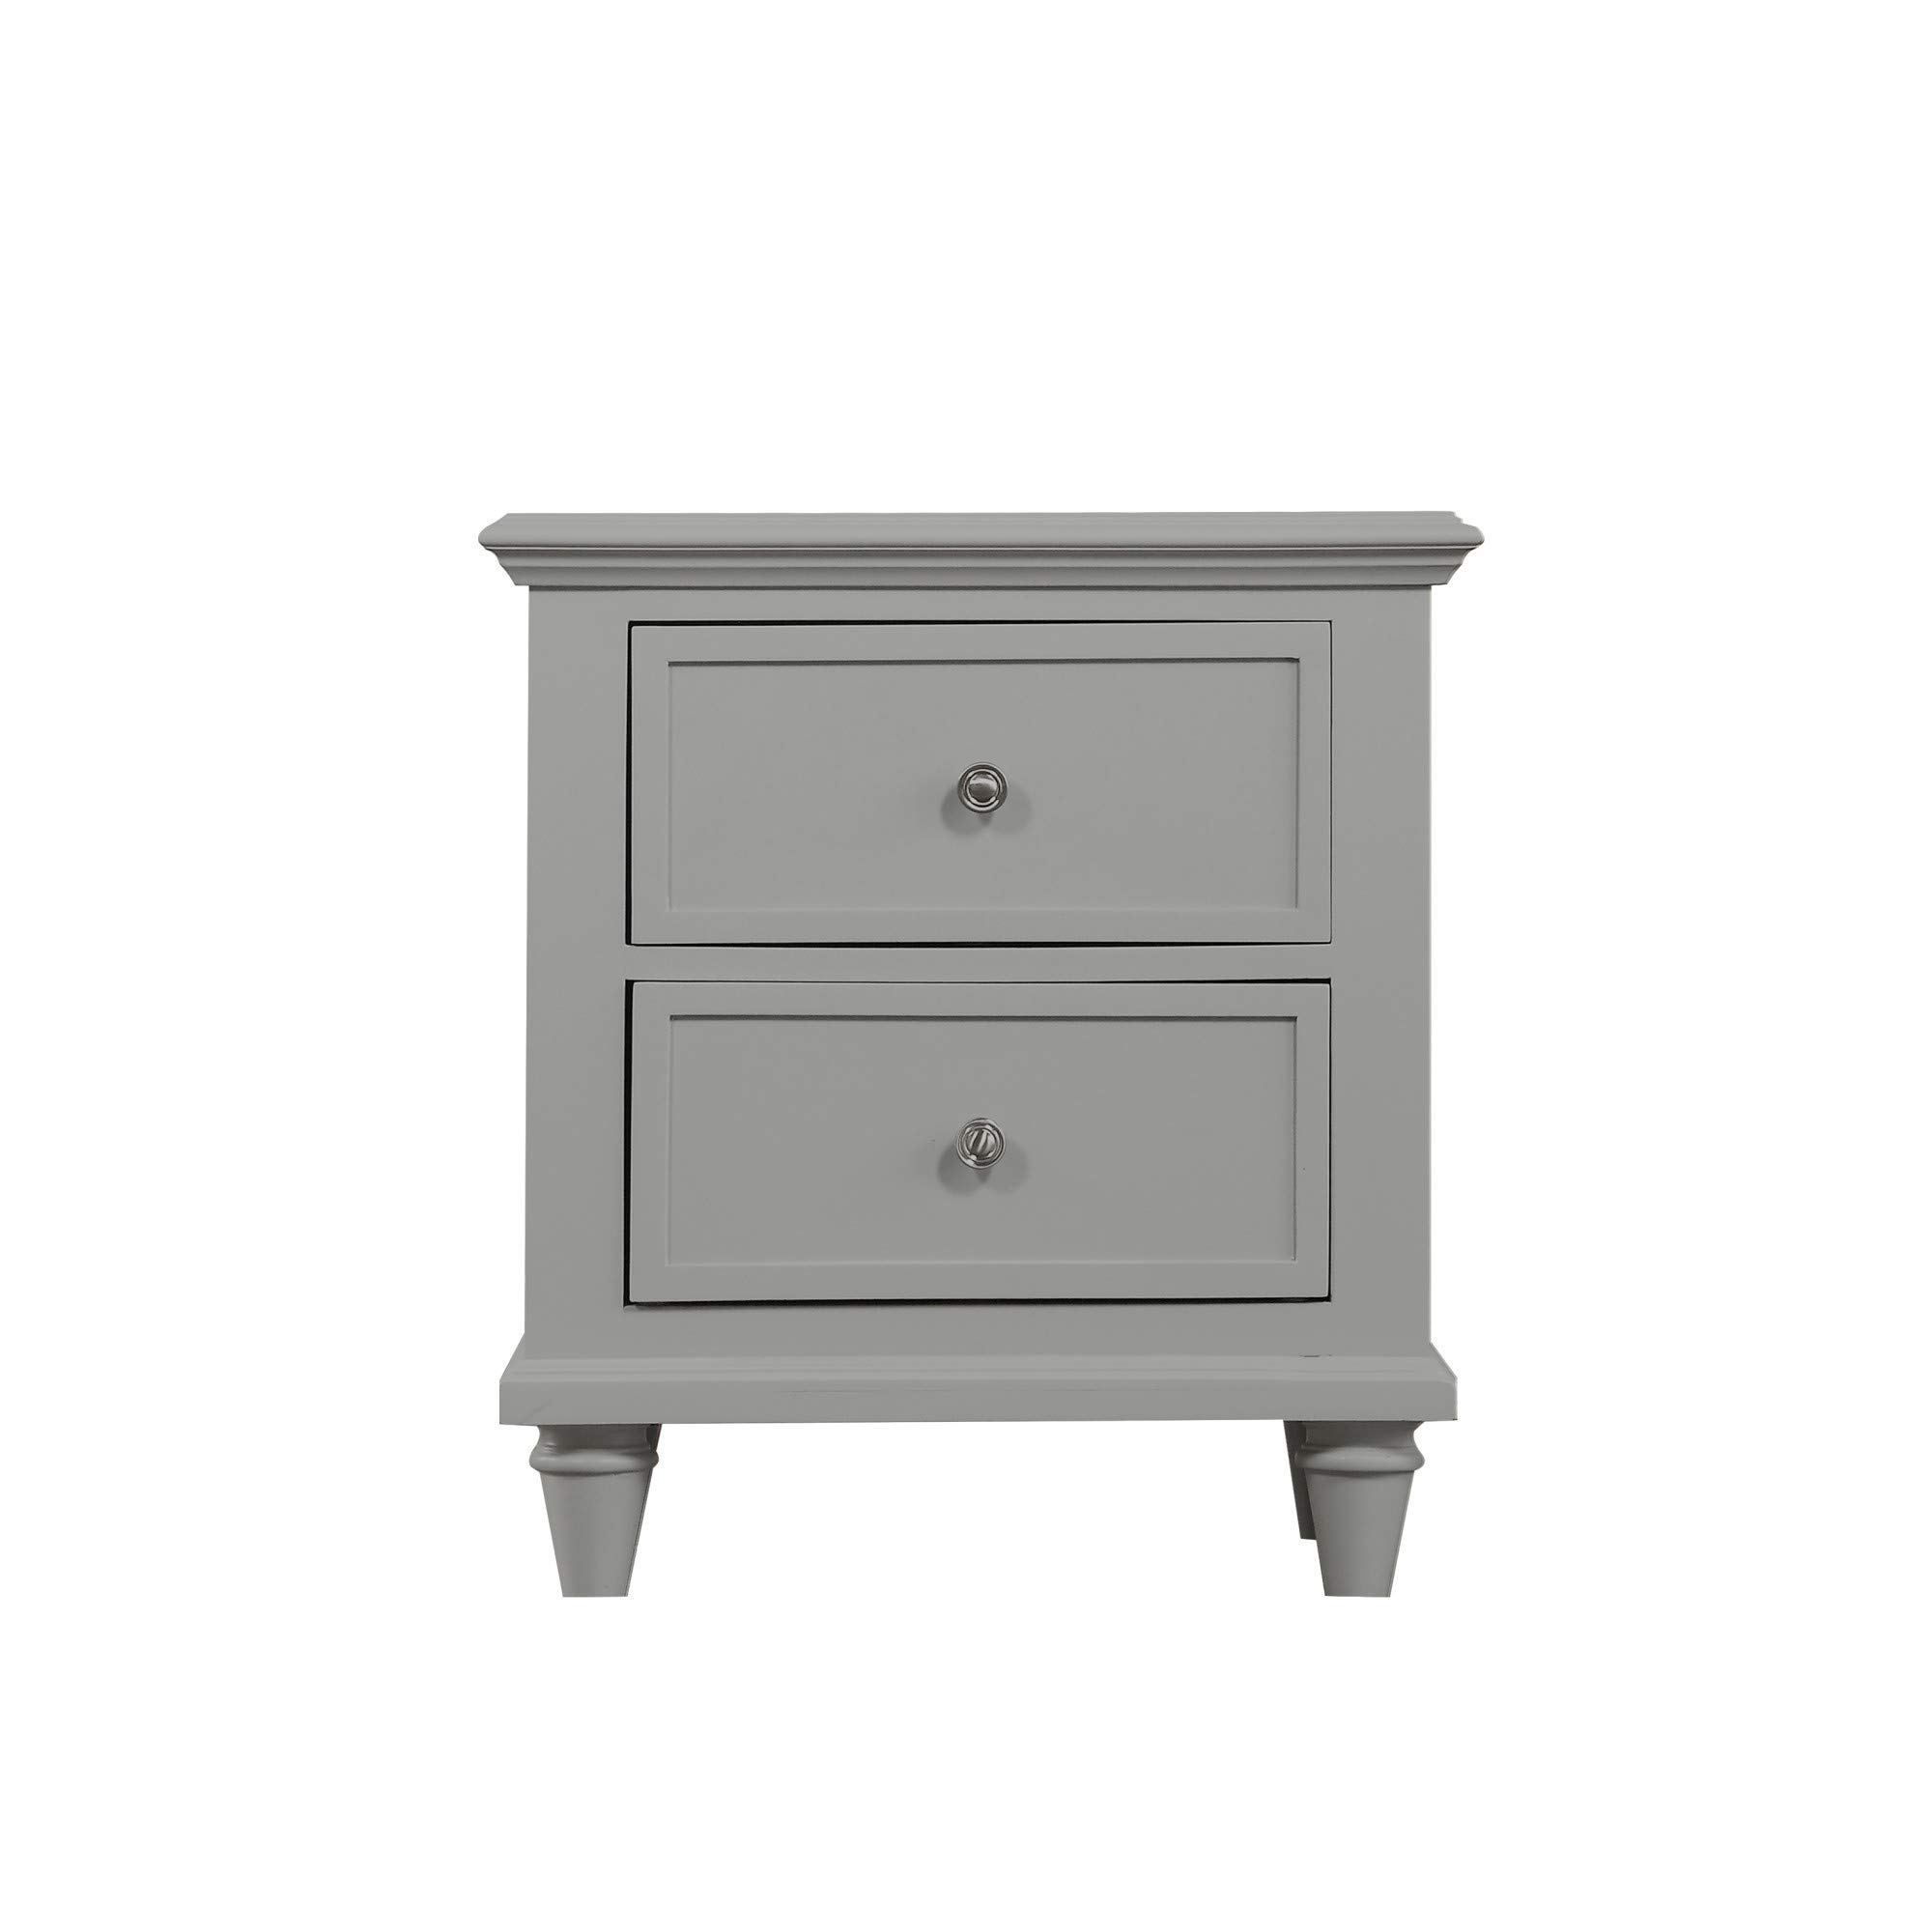 Lona 2-drawer Nightstand in Cinder Block Gray with Turned Wood Legs And Brushed Nickel Hardware, by Artum Hill